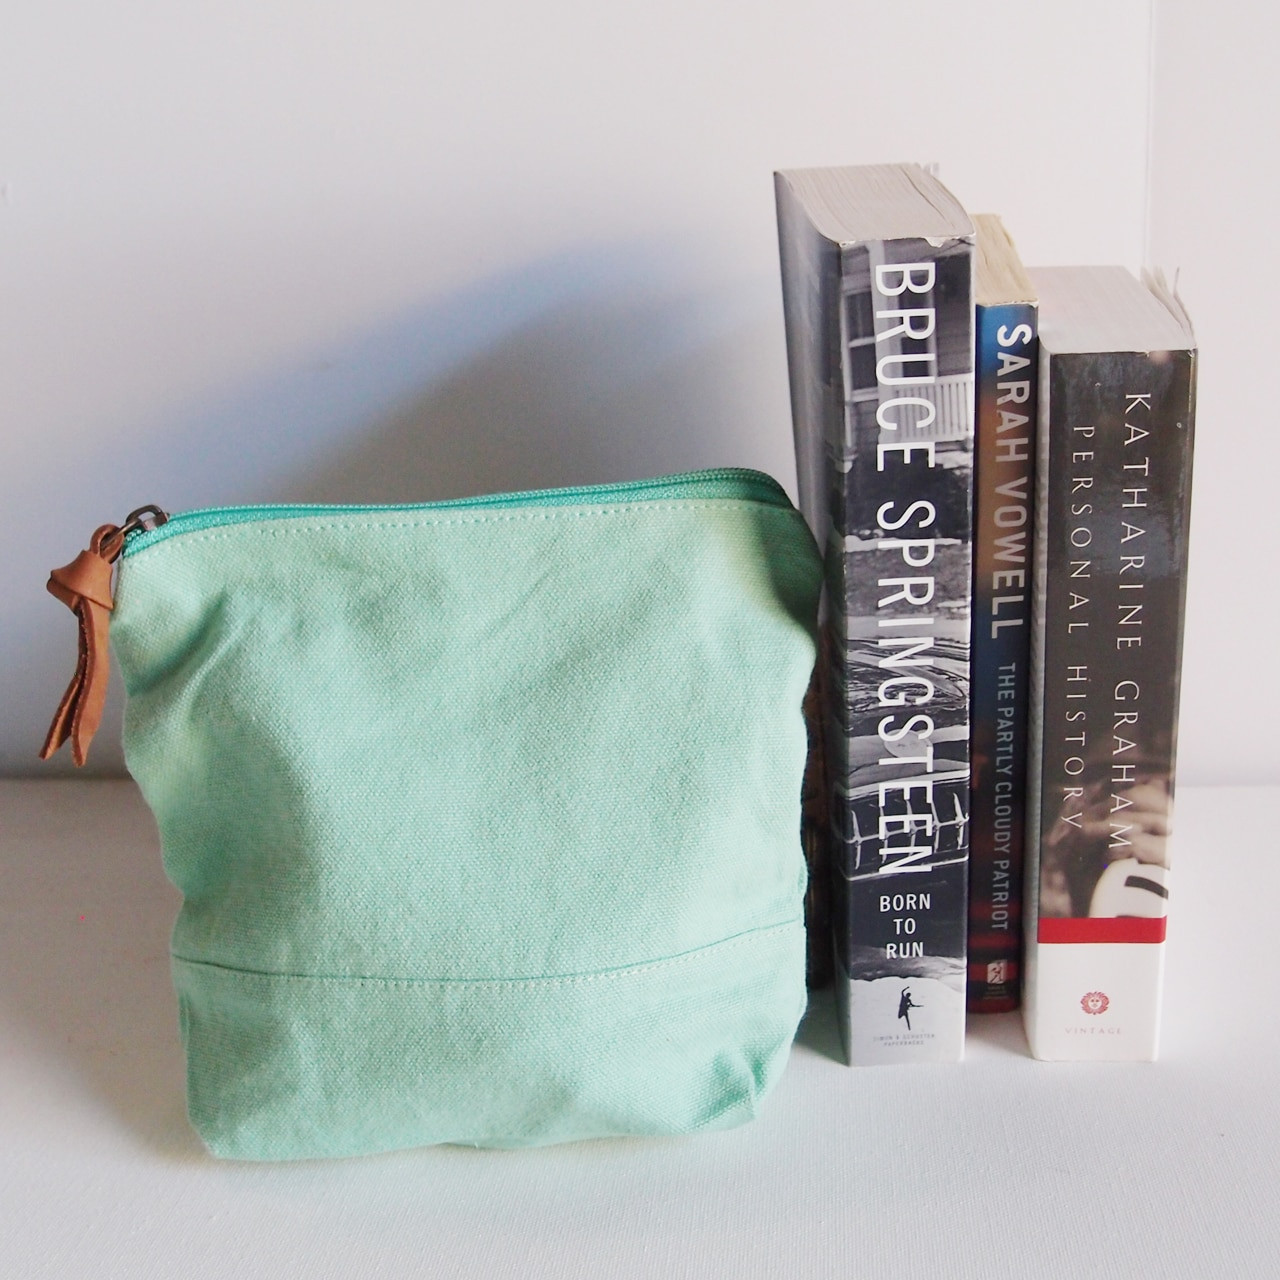 """Wholesale Zippered Pouches, Washed Canvas Zipper Pouch with Leather Puller Mint Green 8"""" x 6.3"""" x 2.4"""" Gusset B686-77, Cotton Zipper Pouch Supplier 